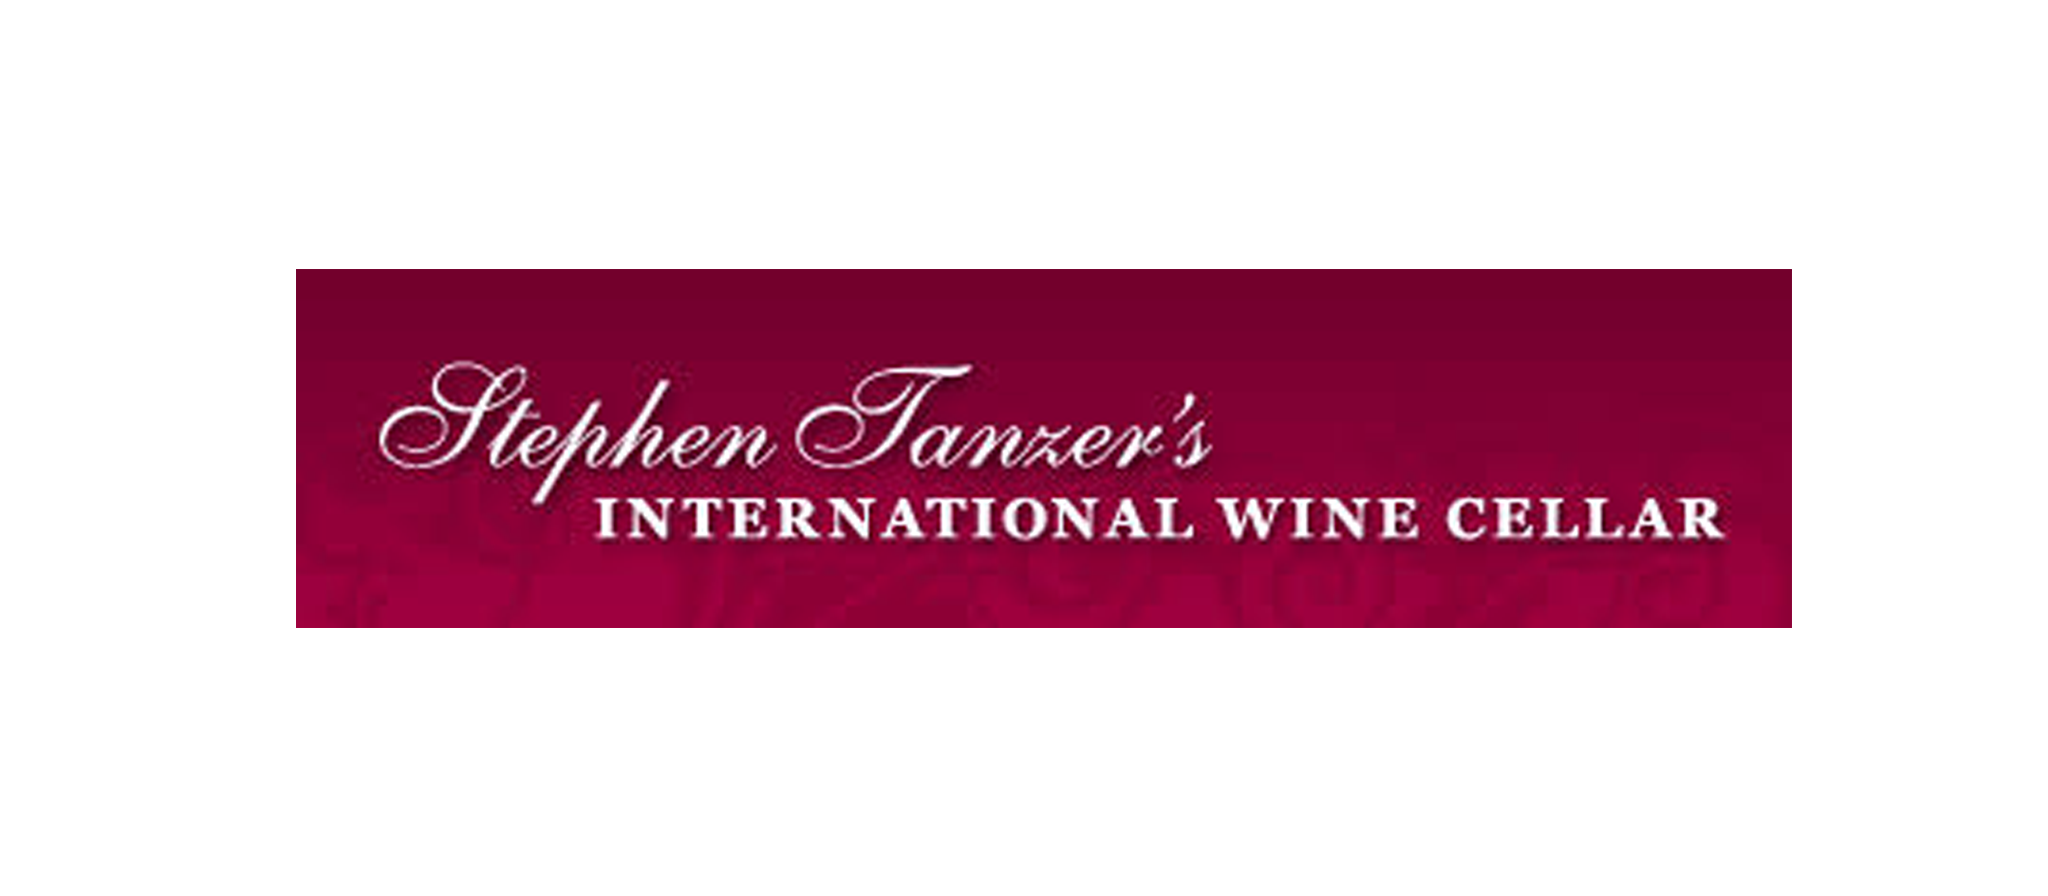 Stephen Tanzer - International Wine Cellar 92/100 pts 0